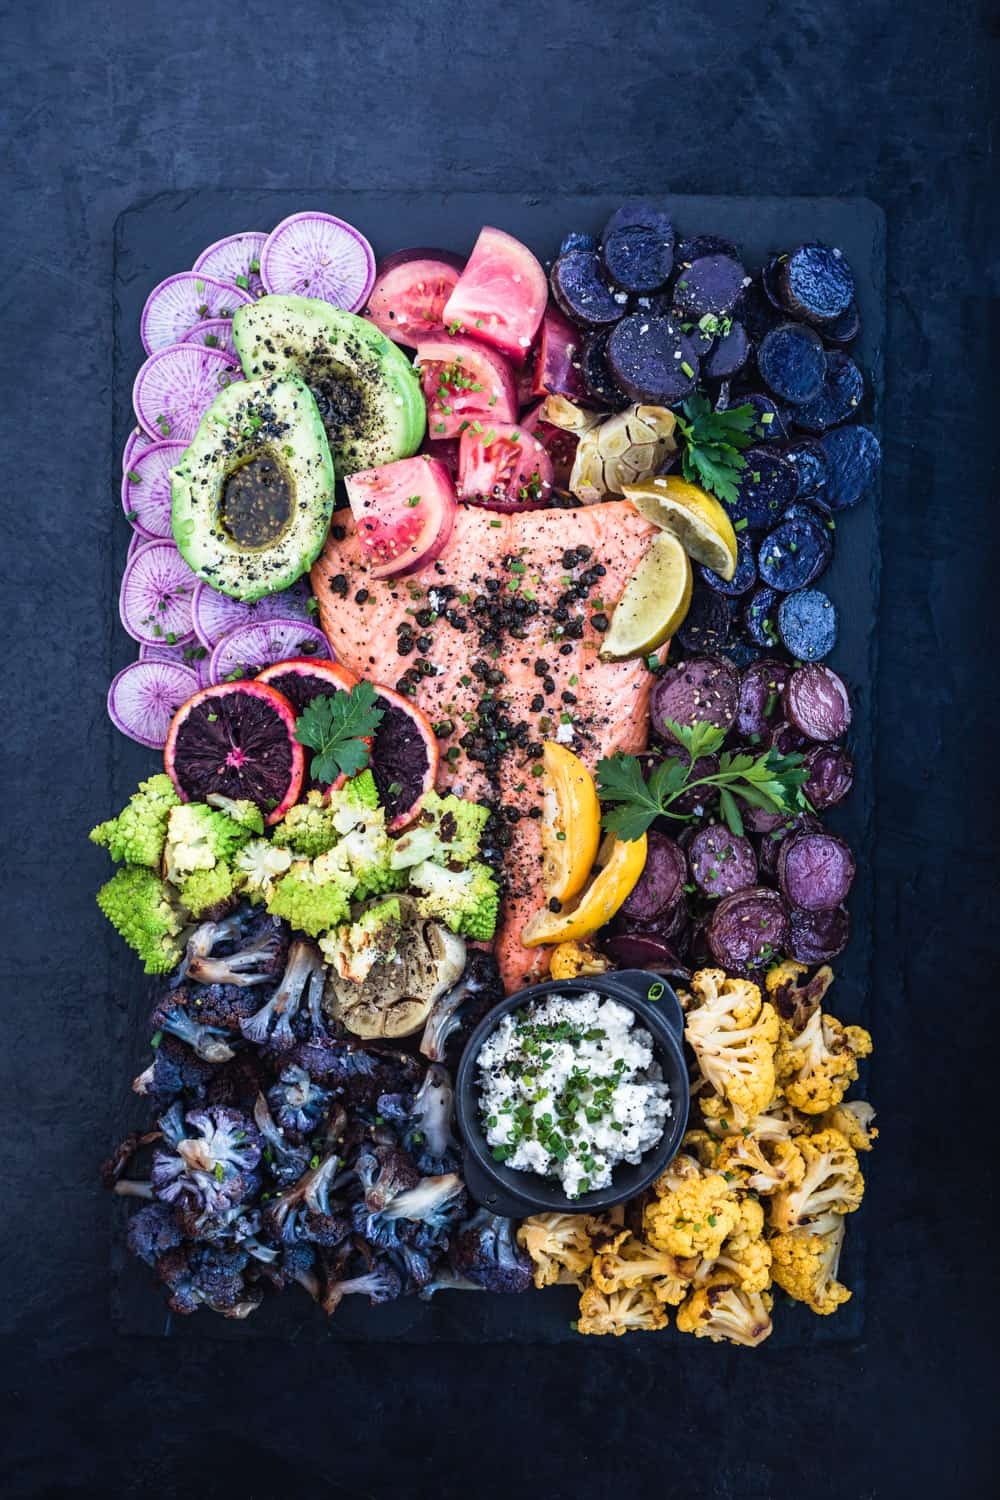 Salmon Rainbow Party Salad Board with ninja radishes, avocado, tomatoes, purple and pink potatoes, garlic, yellow and purple cauliflower, romanesco, blood oranges, garlic, lemons, limes and cheese sprinkled with fresh herbs and fried capers.